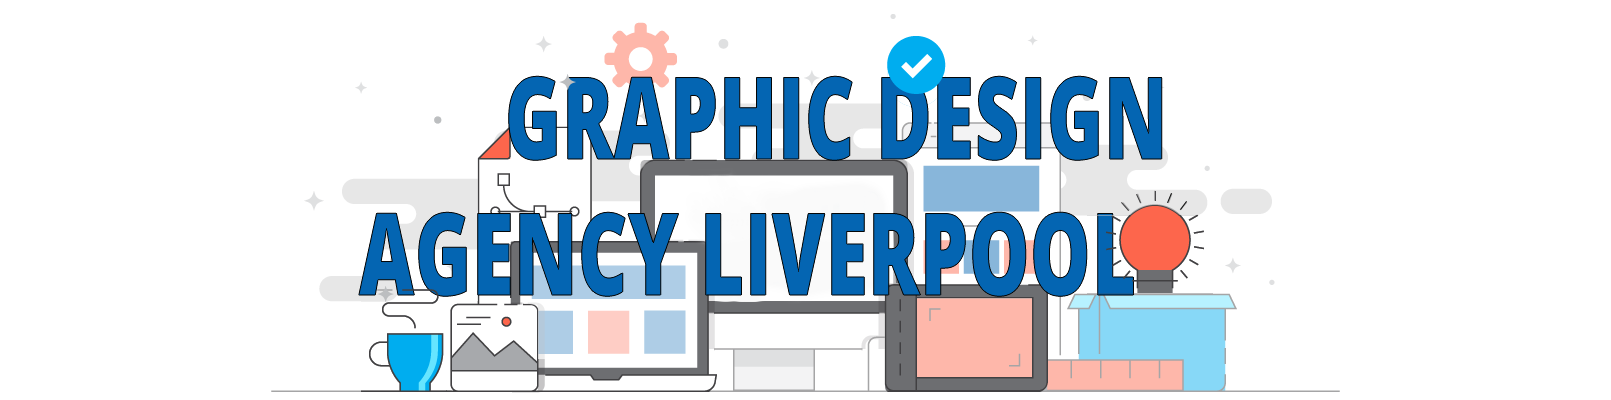 Graphic Design agency in liverpool to market your product